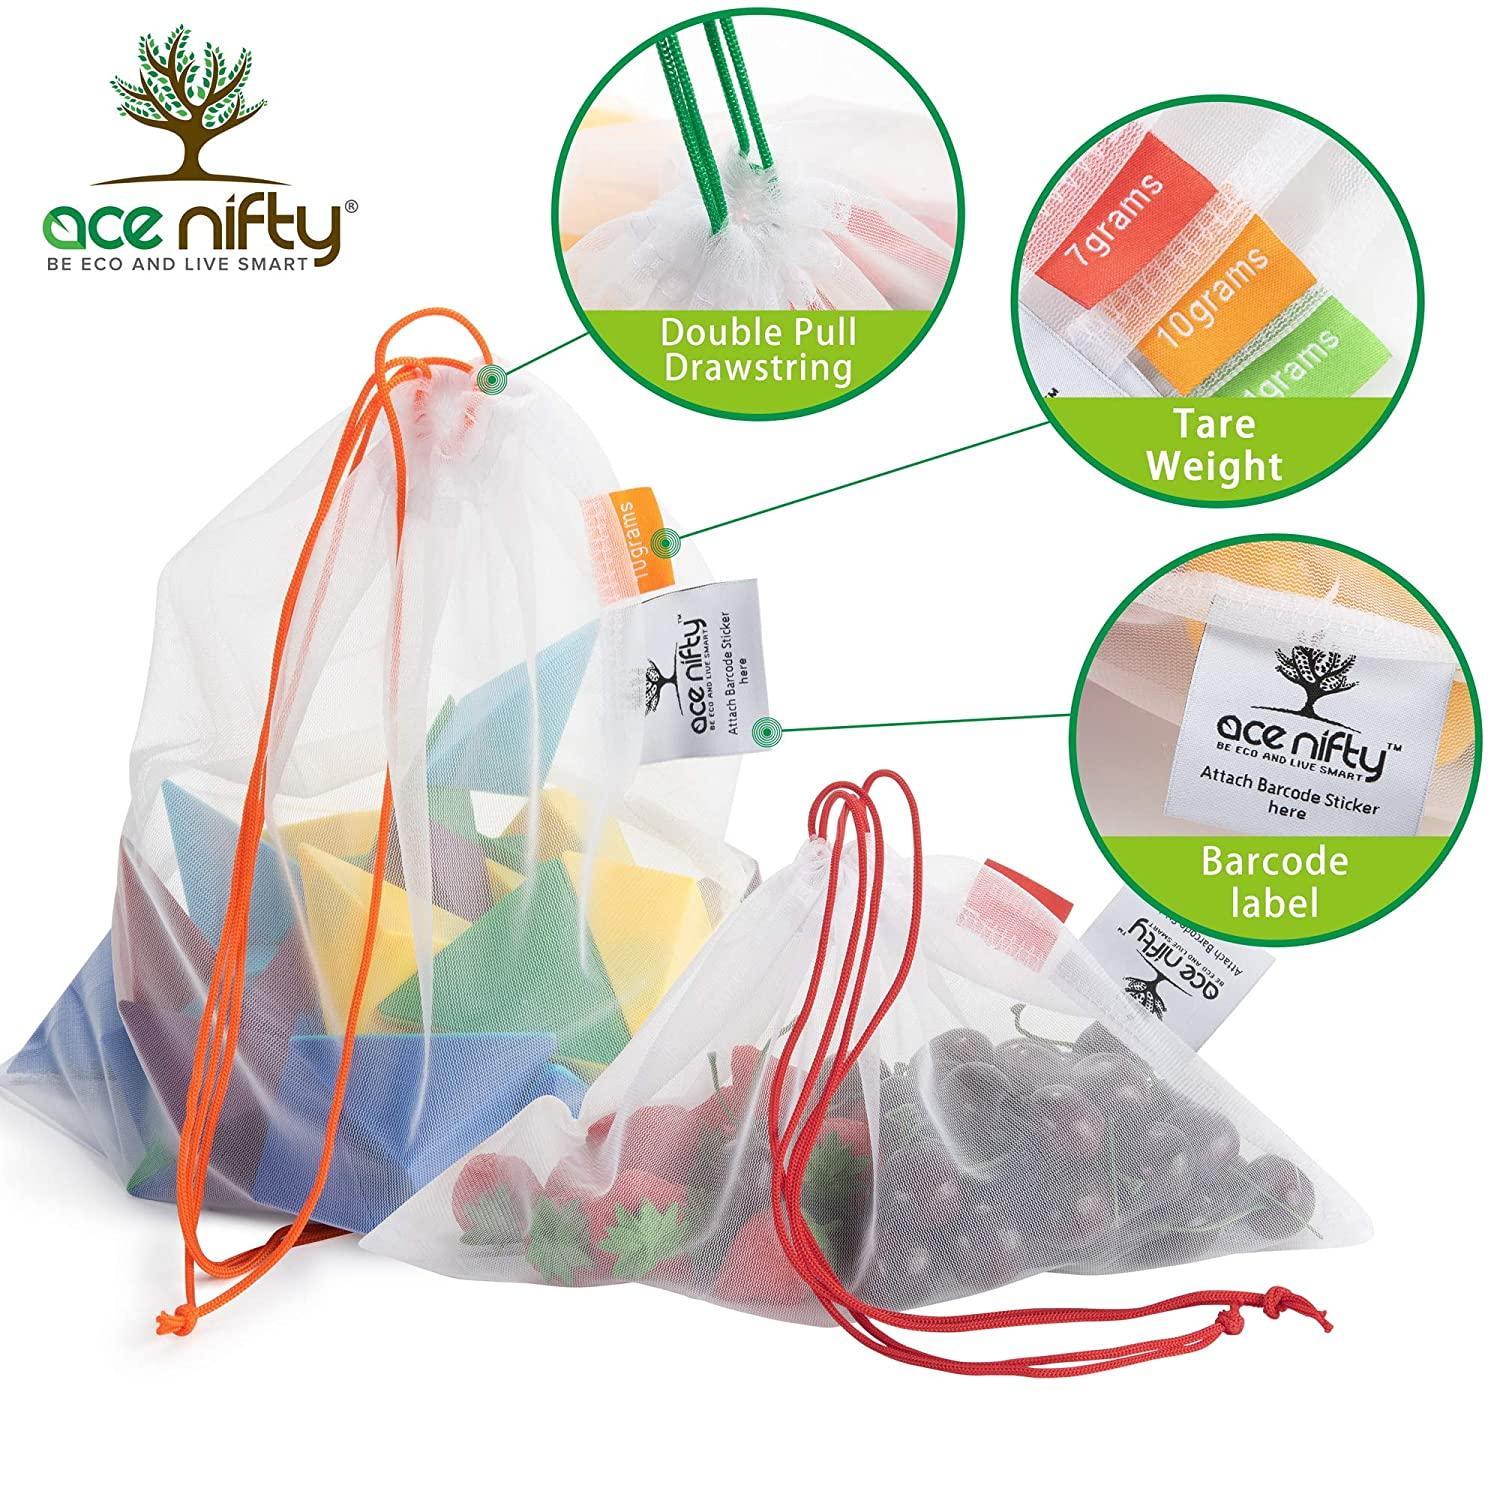 Ecological and Reusable Portable Bag 6 Bags Zero Waste Reusable Fruit and Veg Bags as Shopping Bag 2x S//M//XL Eco Reusable Mesh Produce Bags Ace Nifty Reusable Produce Bags from Recycled Bottles